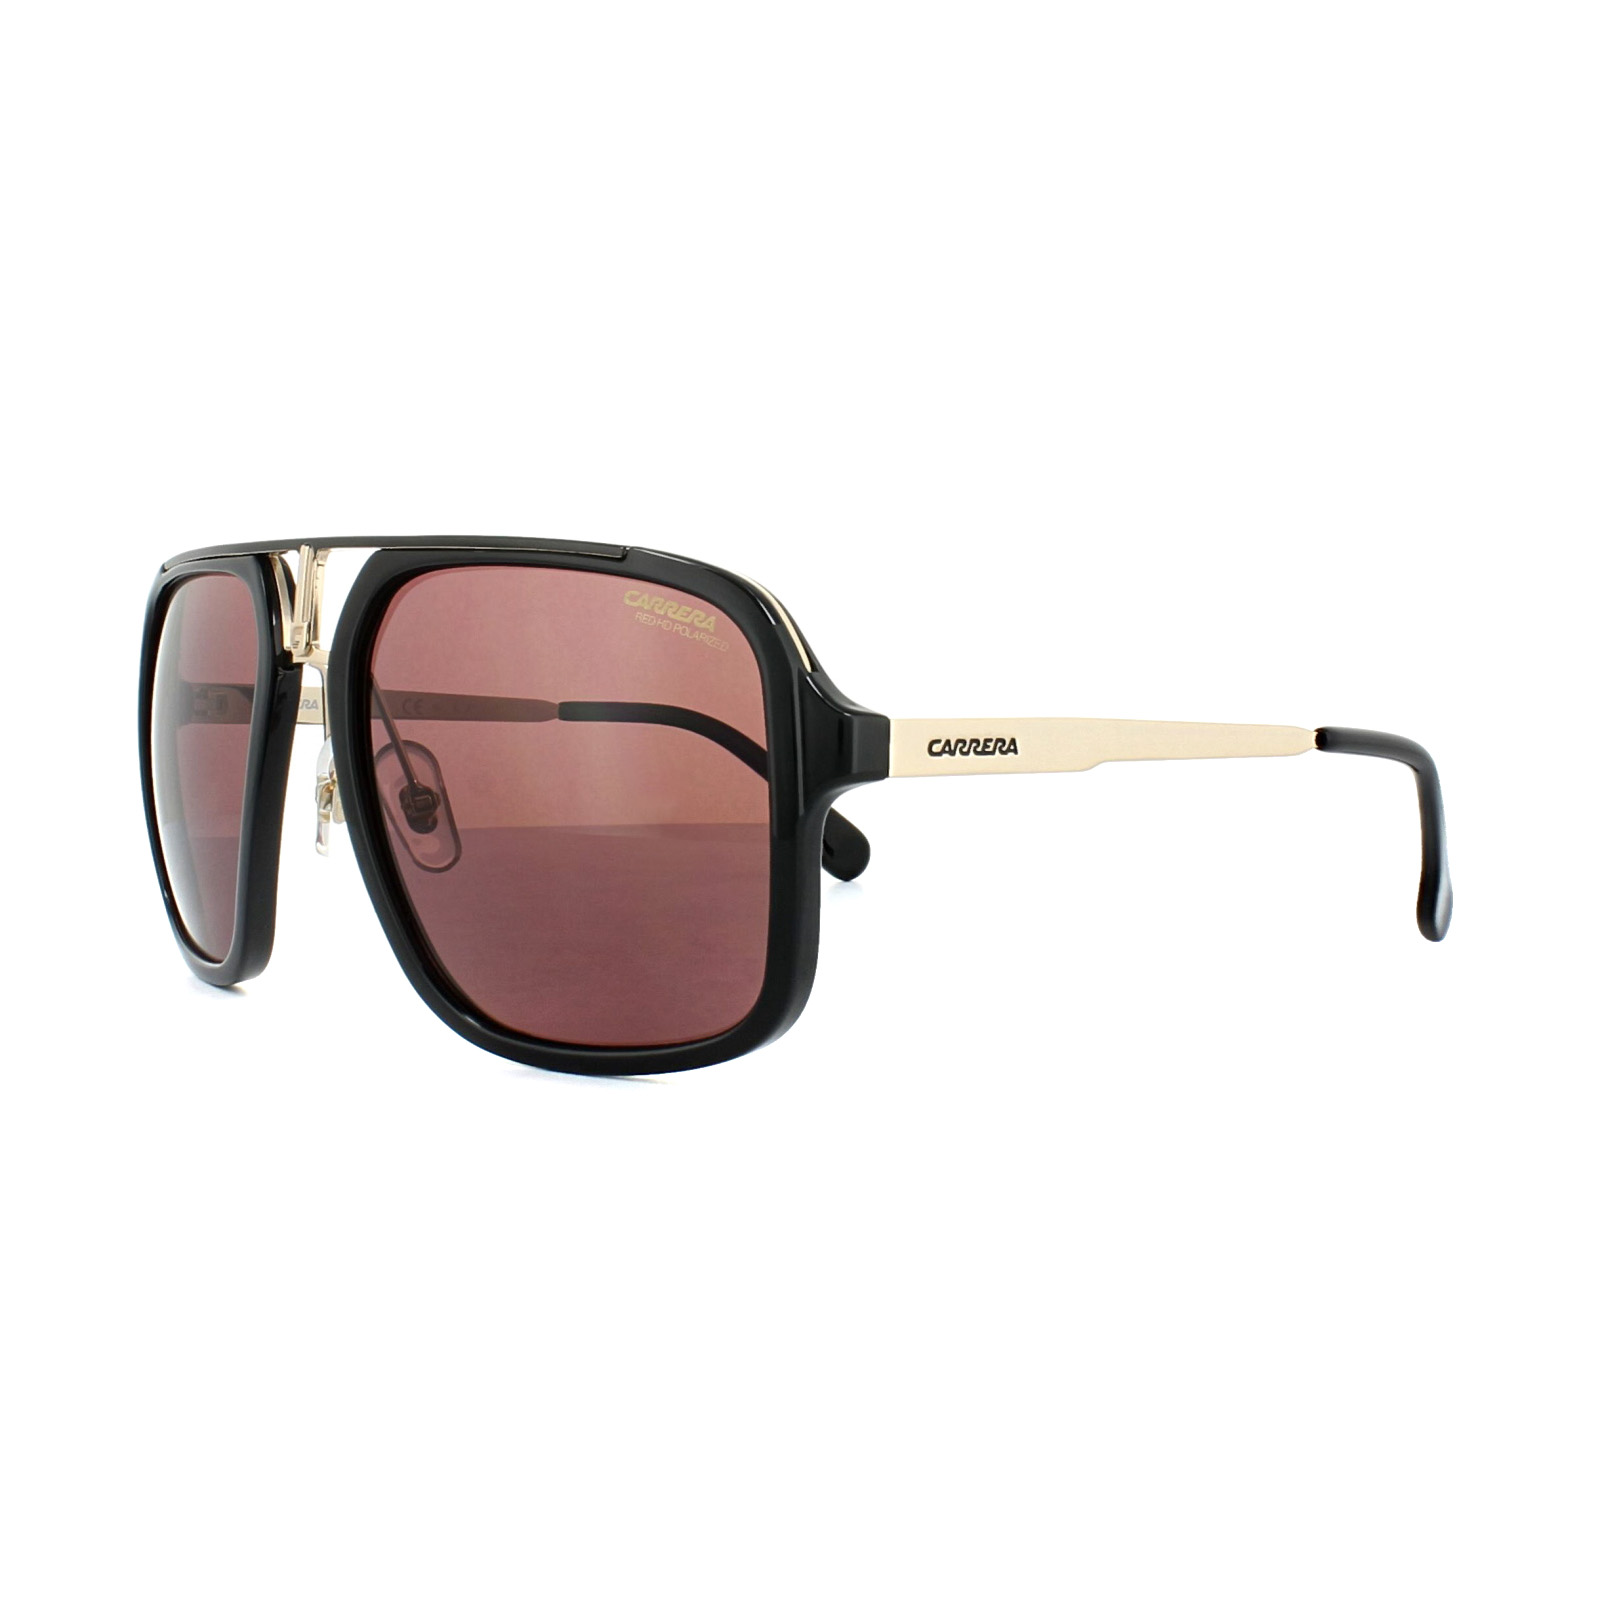 Carrera Sunglasses 1004/S 2M2 W6 Black Gold Dark Pink Polarized ...